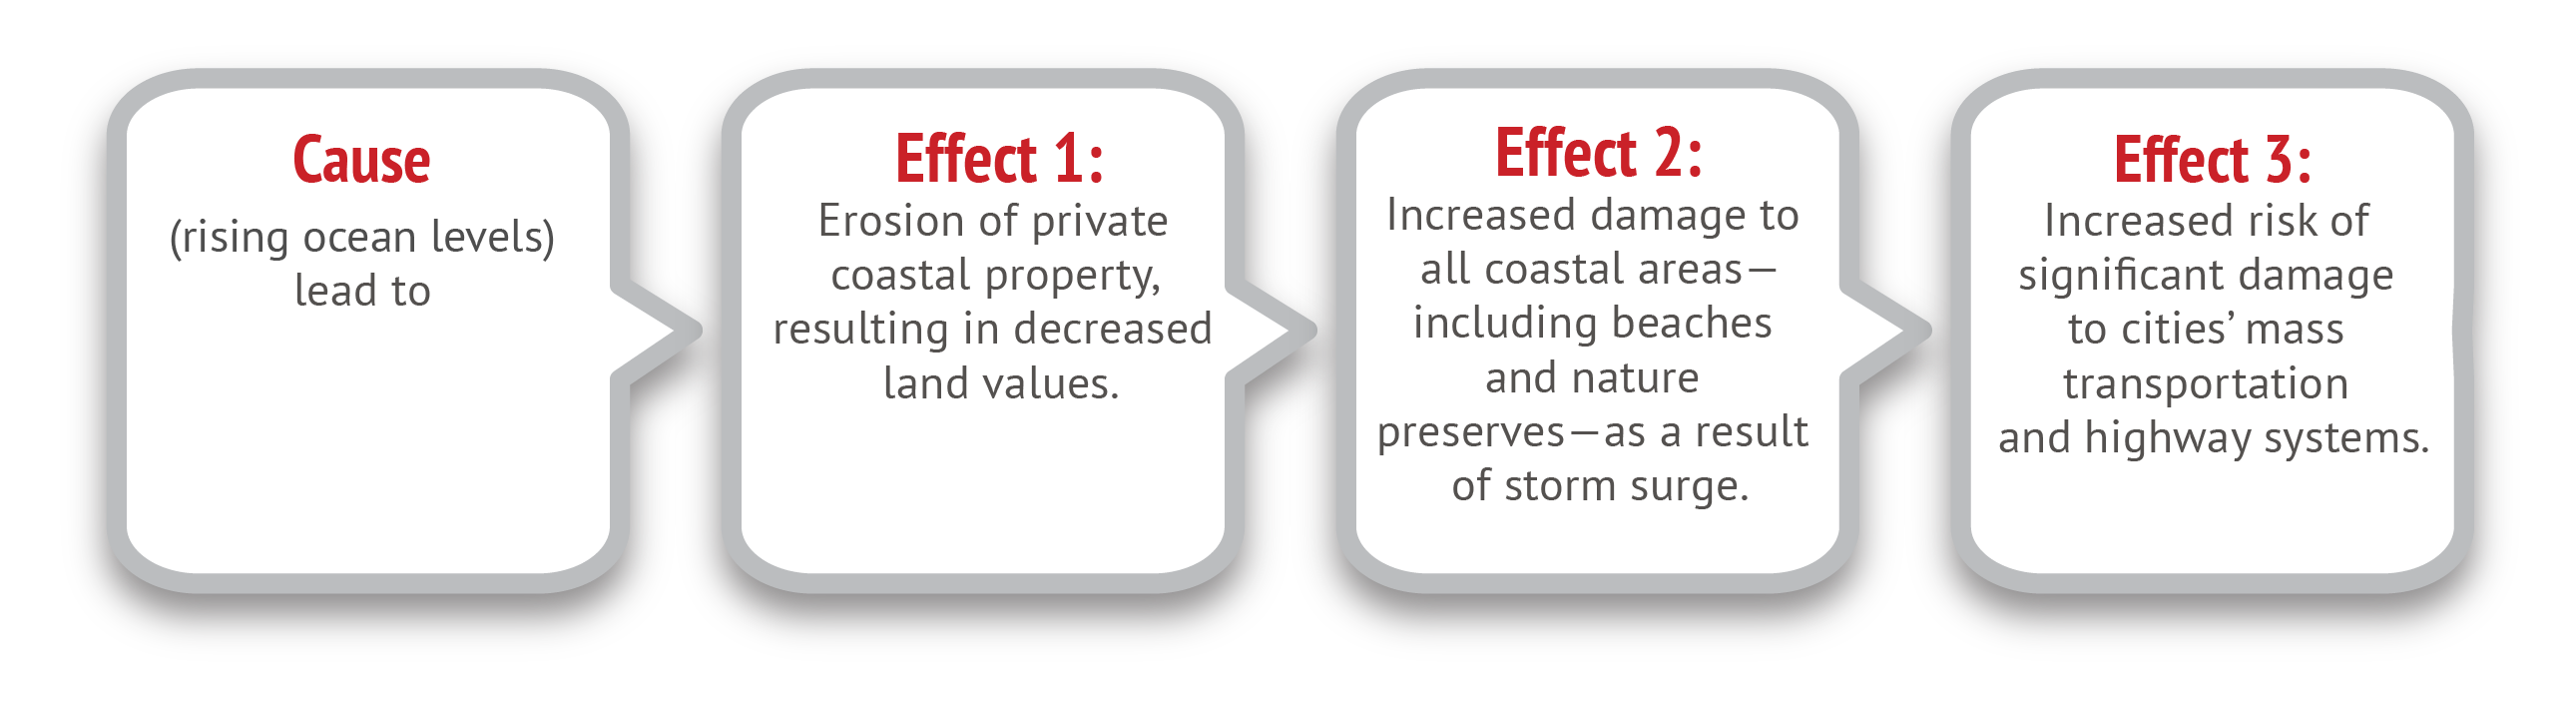 effect and cause